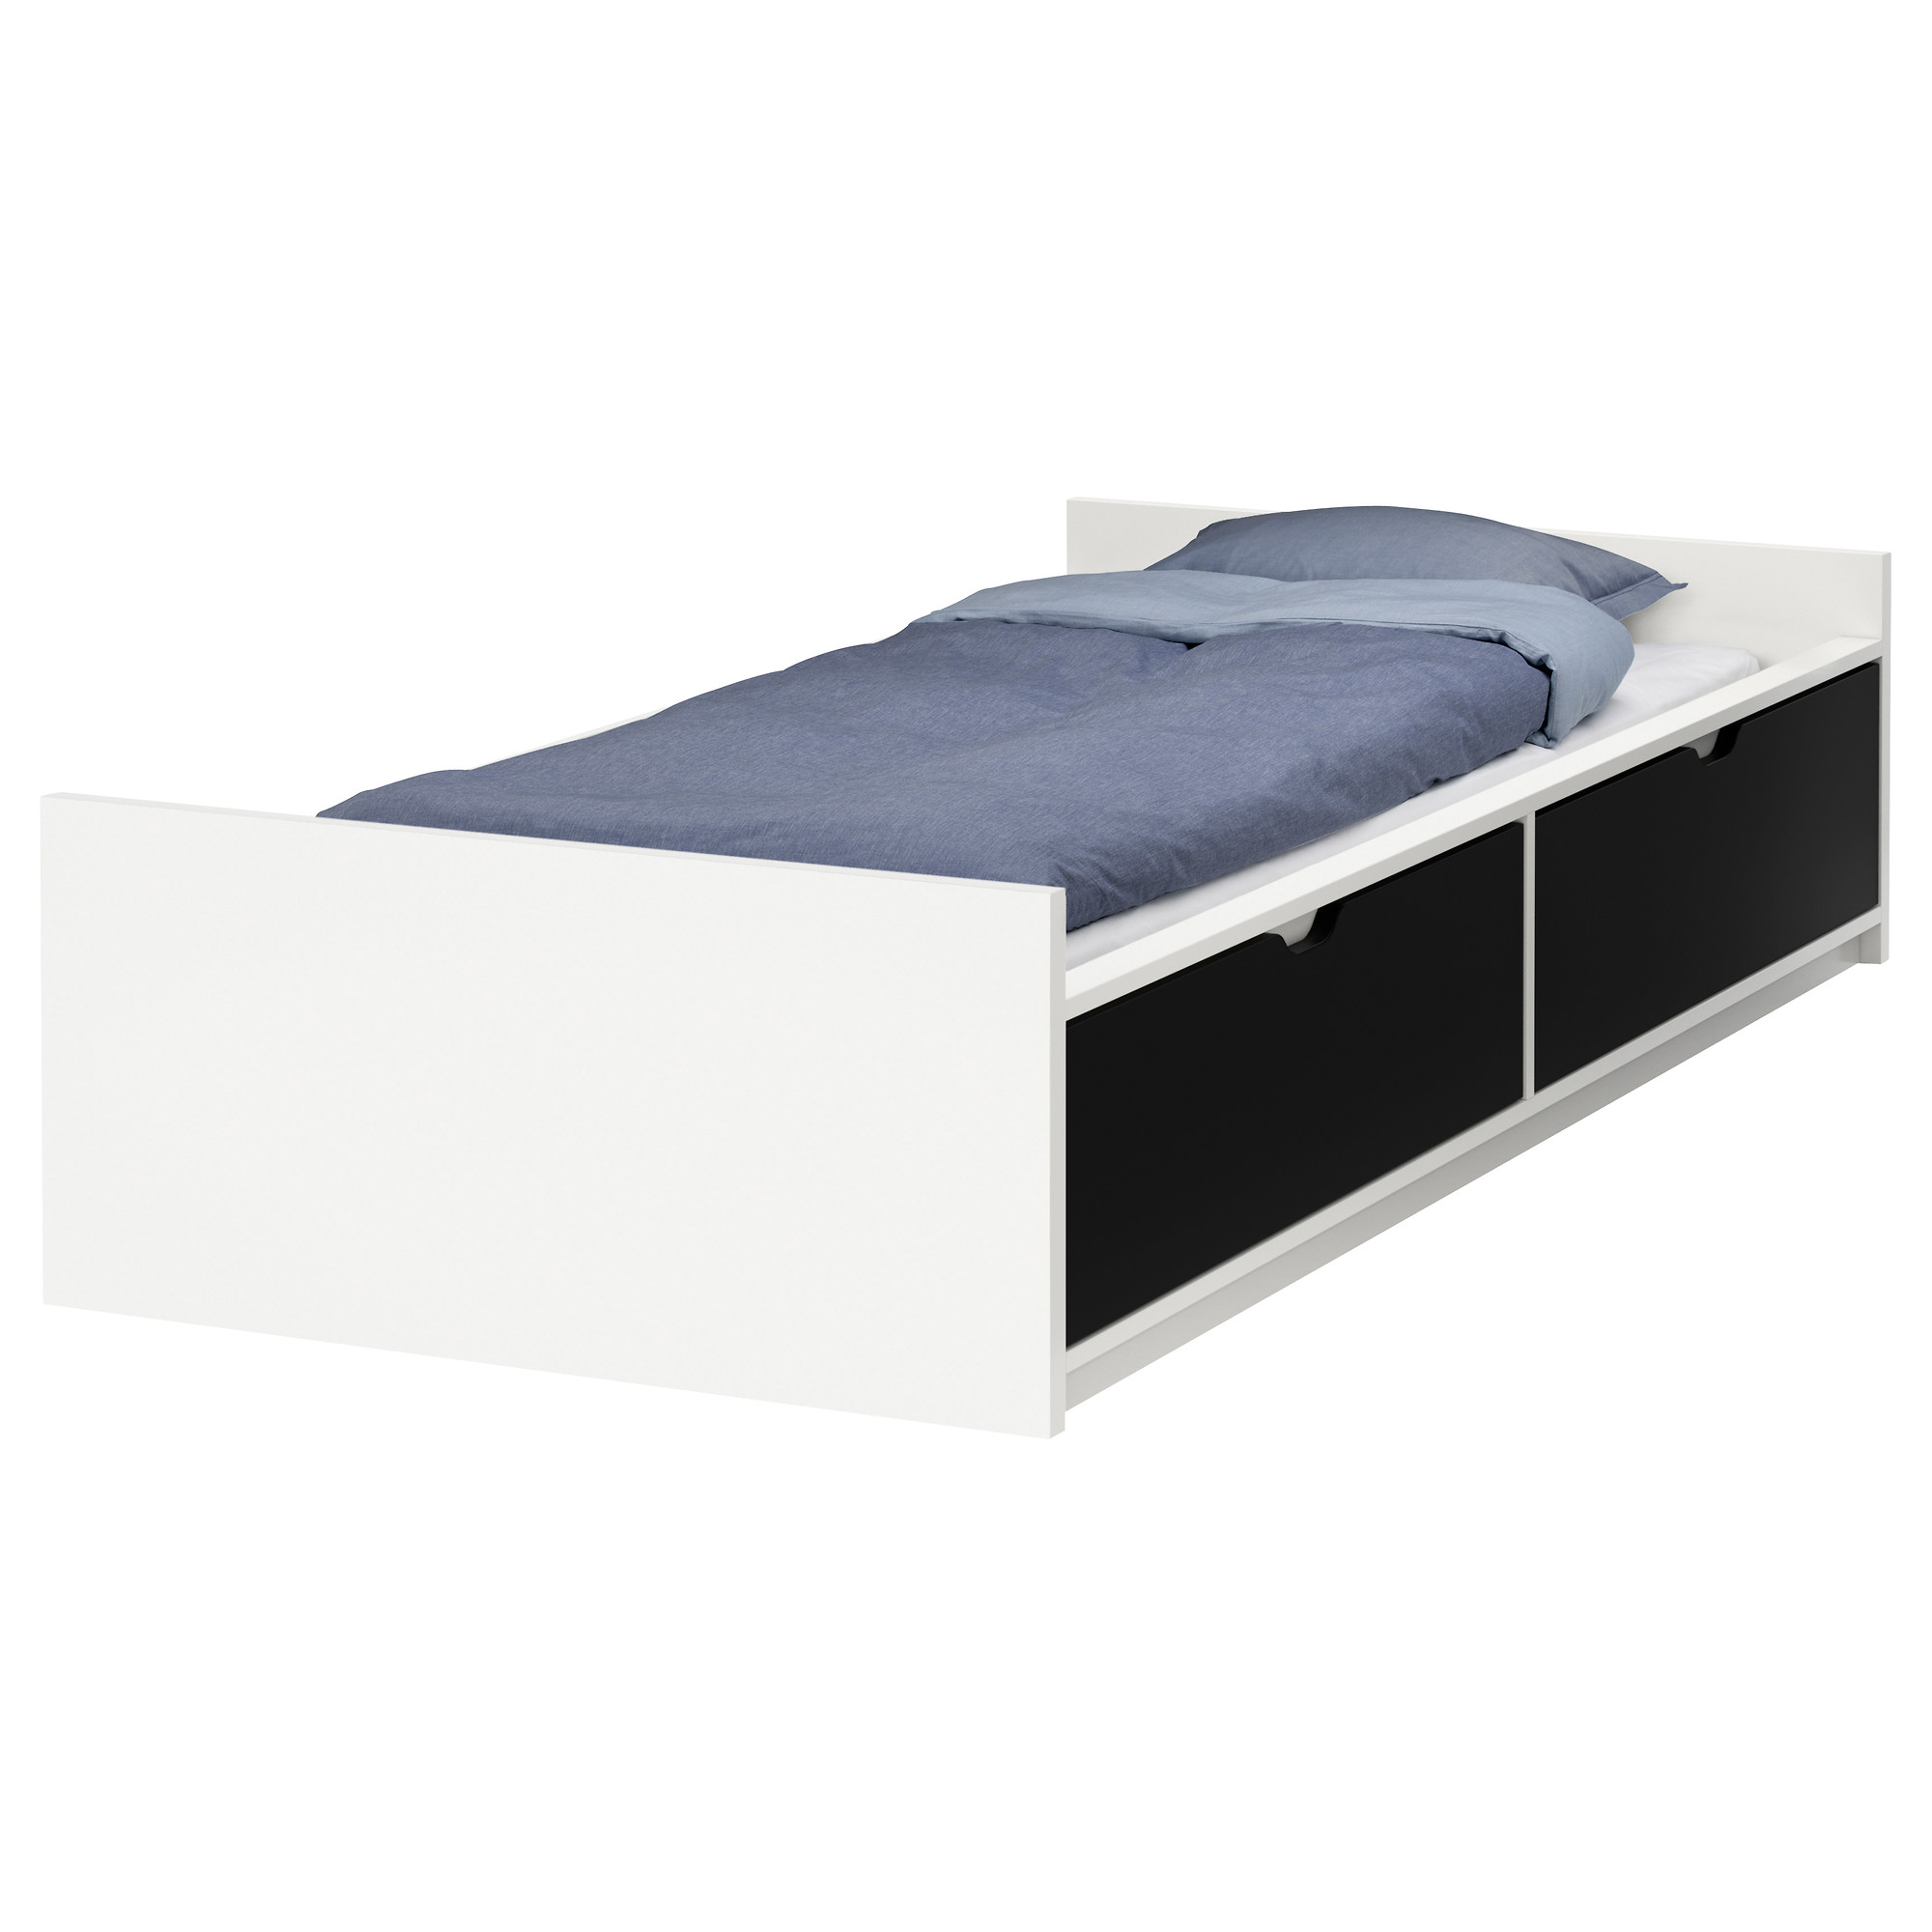 Wonderful twin xl bed frame ikea homesfeed for Ikea mattress frame